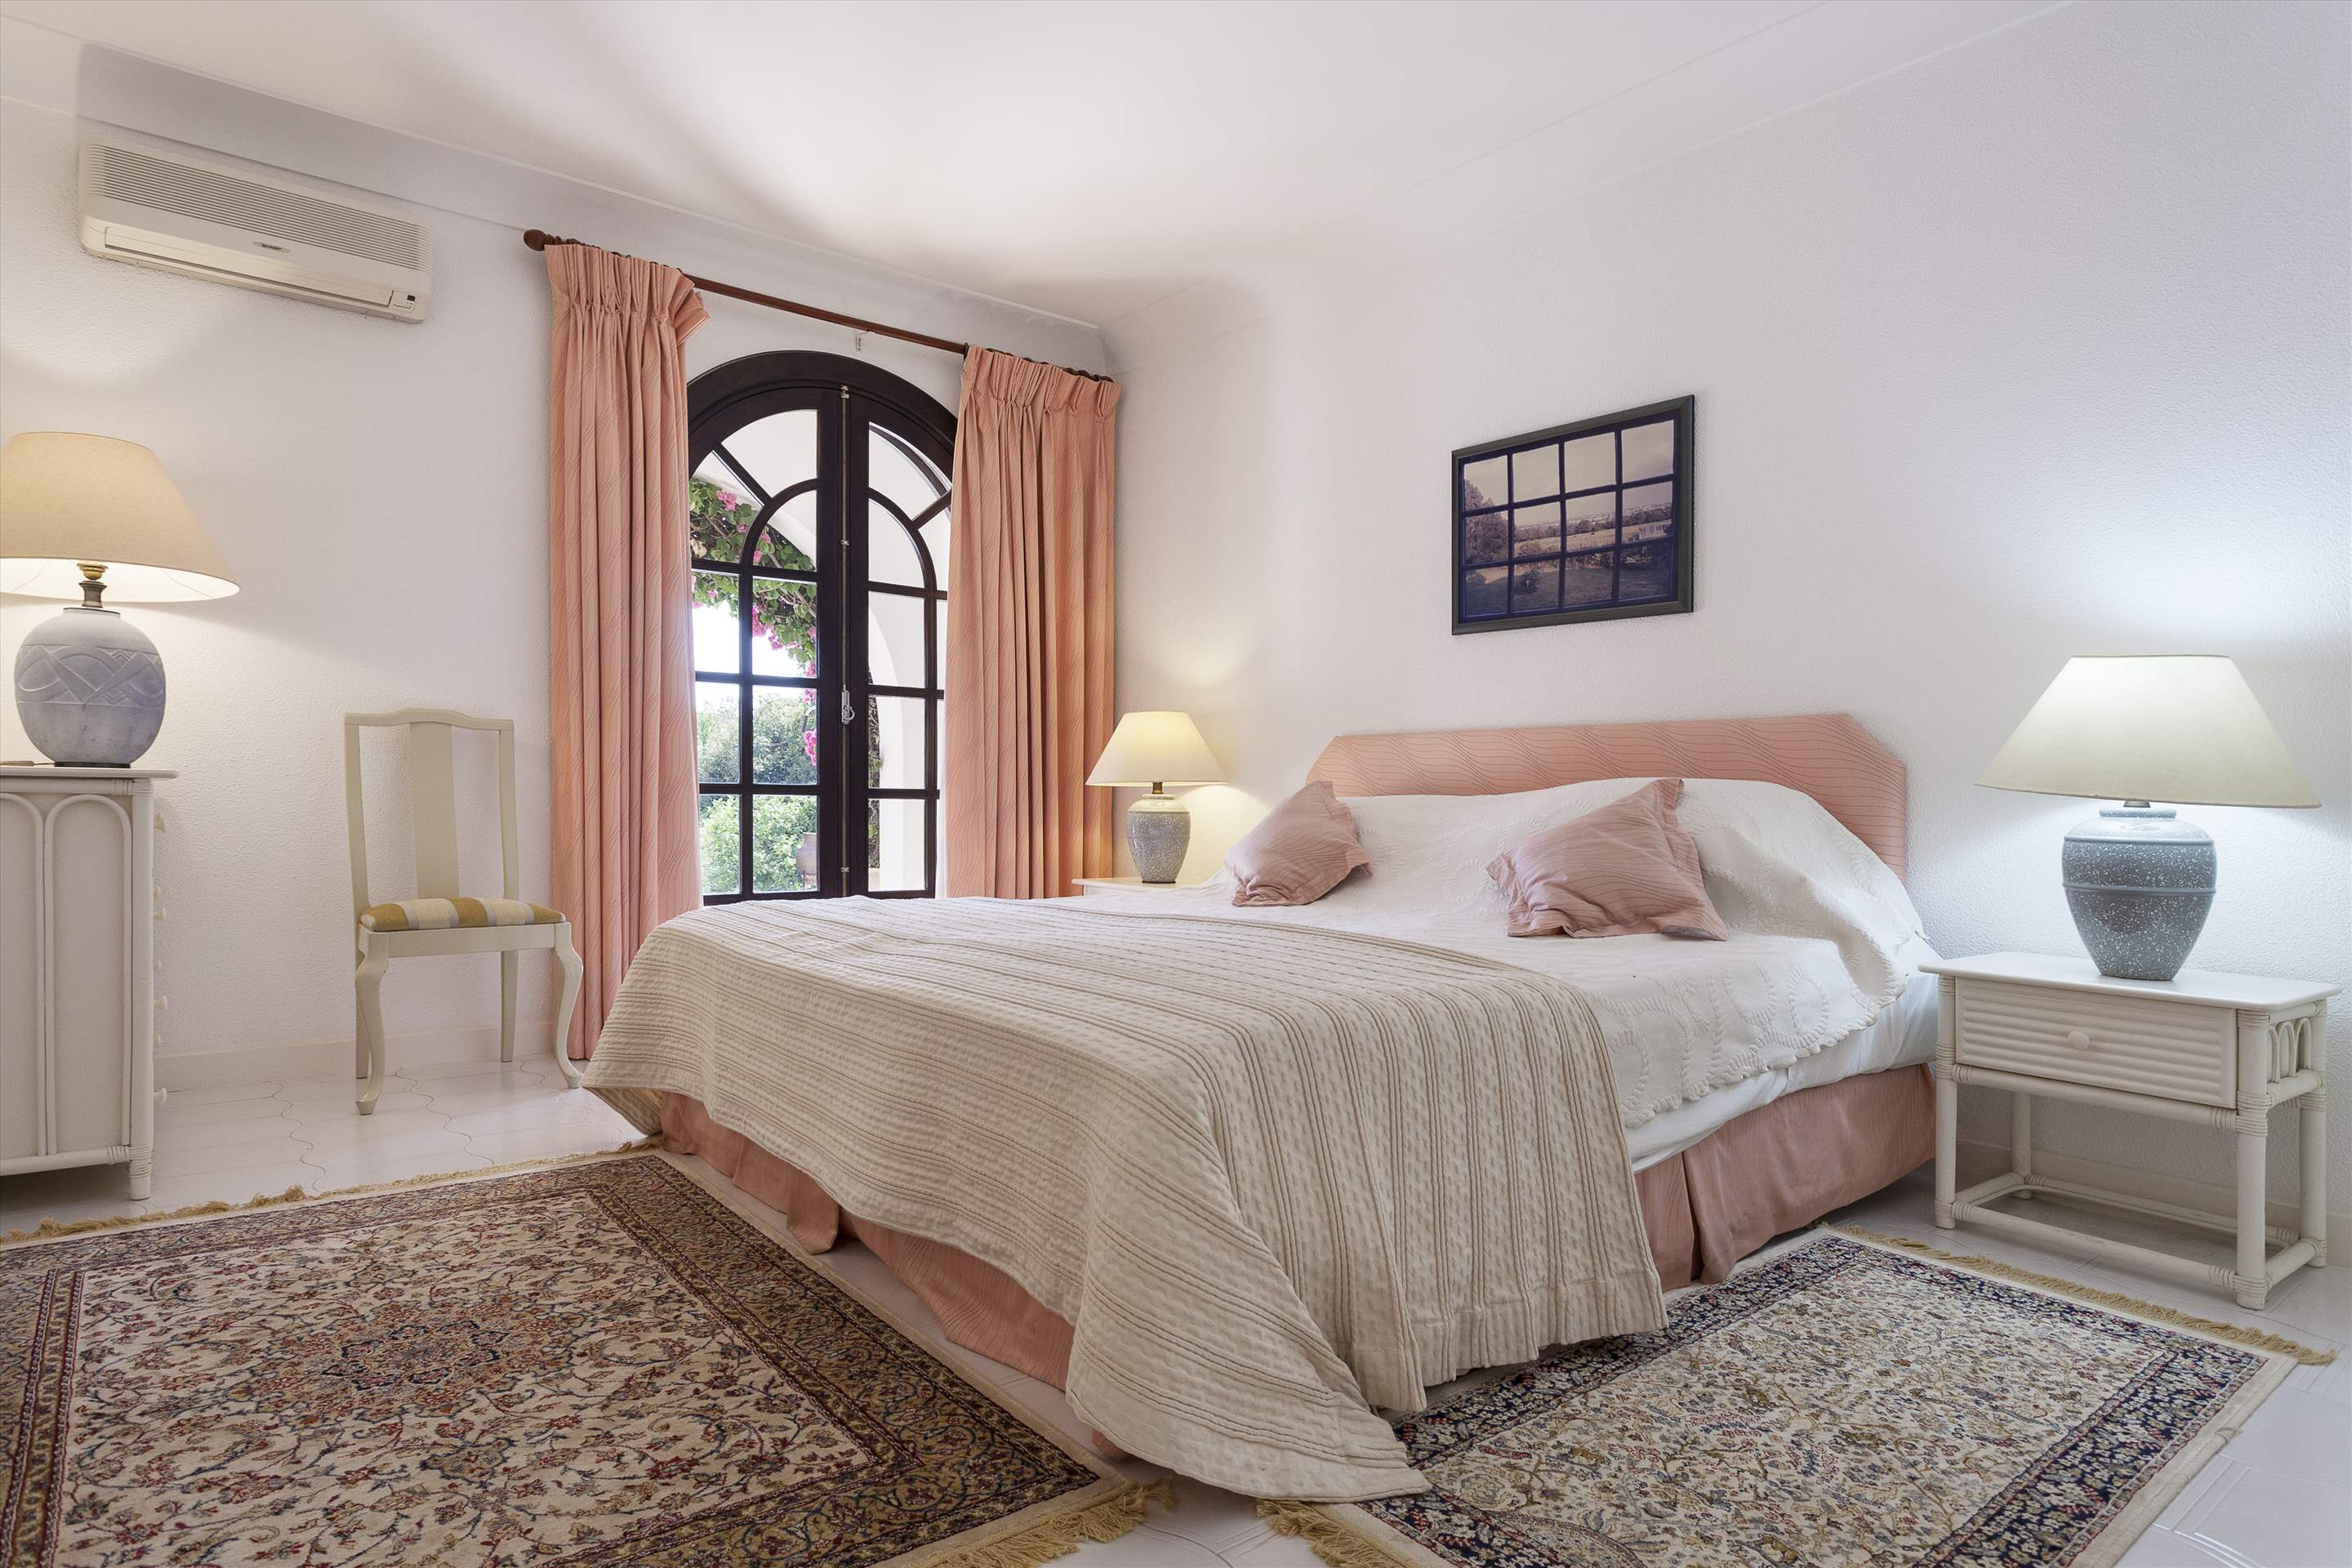 Villa Lake View, 4 bedroom villa in Quinta do Lago, Algarve Photo #18